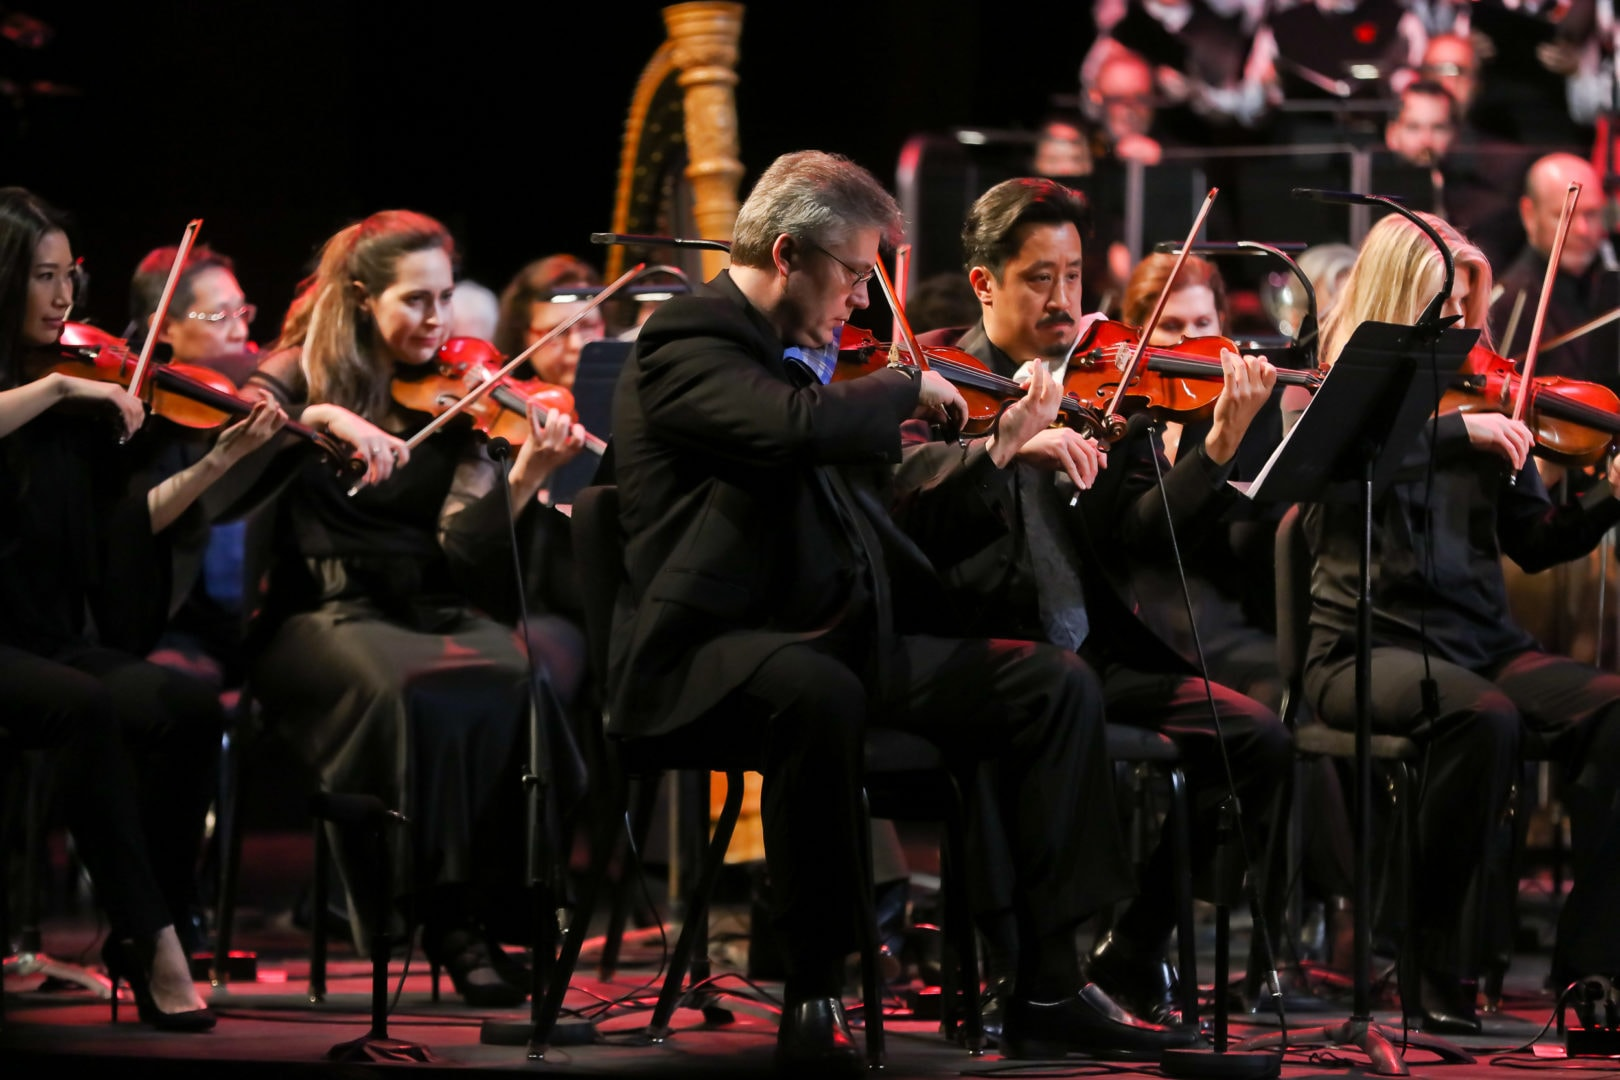 <h3>The strings section of the Free Spirit Symphony Orchestra.</h3>